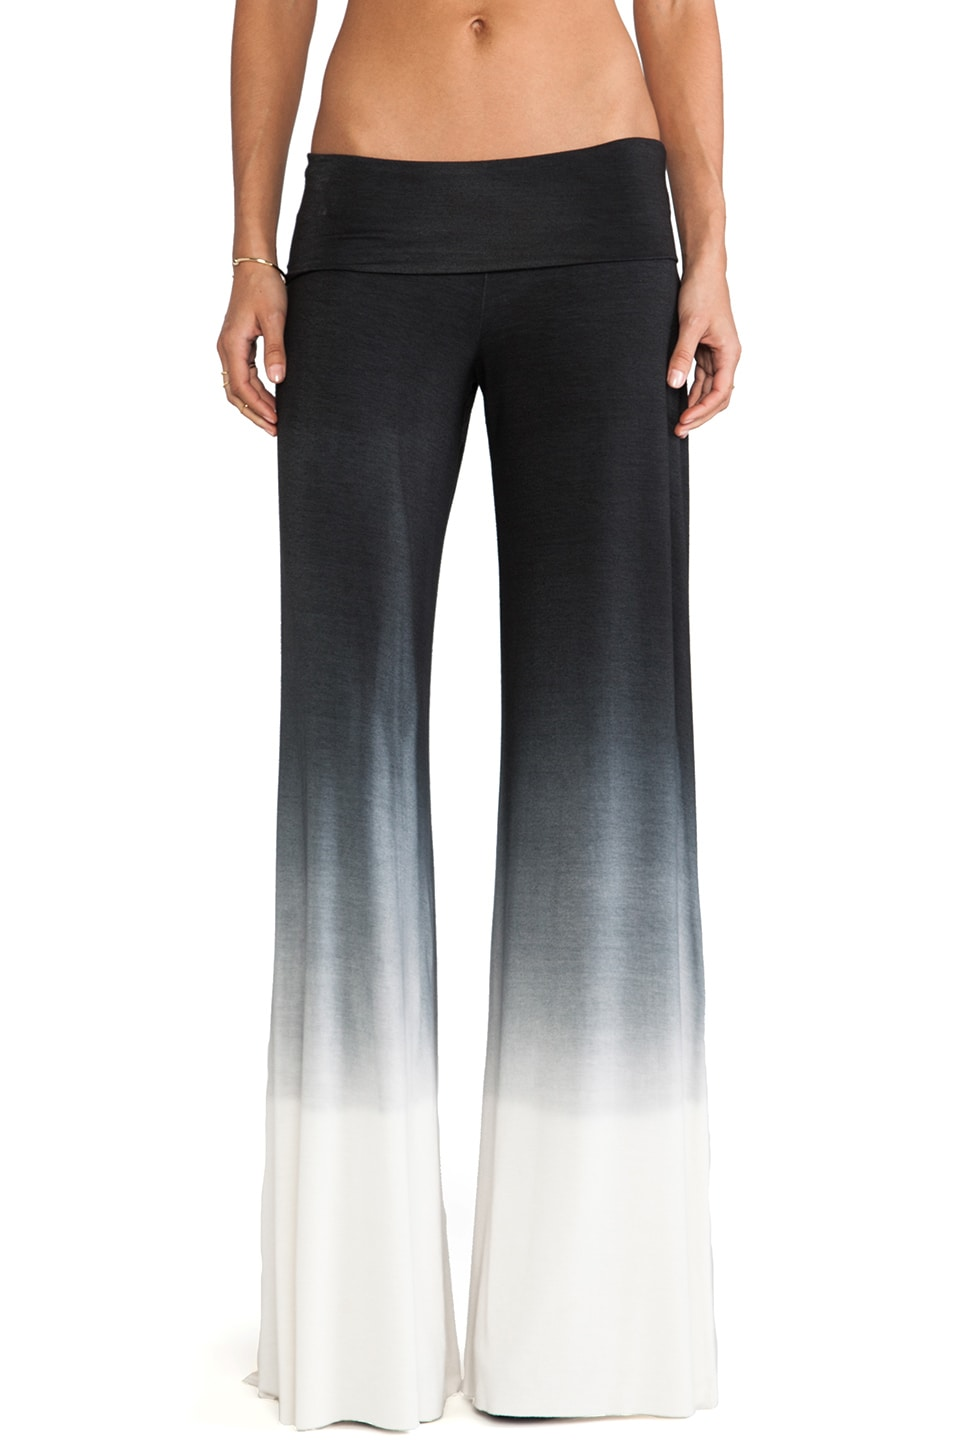 Saint Grace Carol Wide Leg Pant in Black